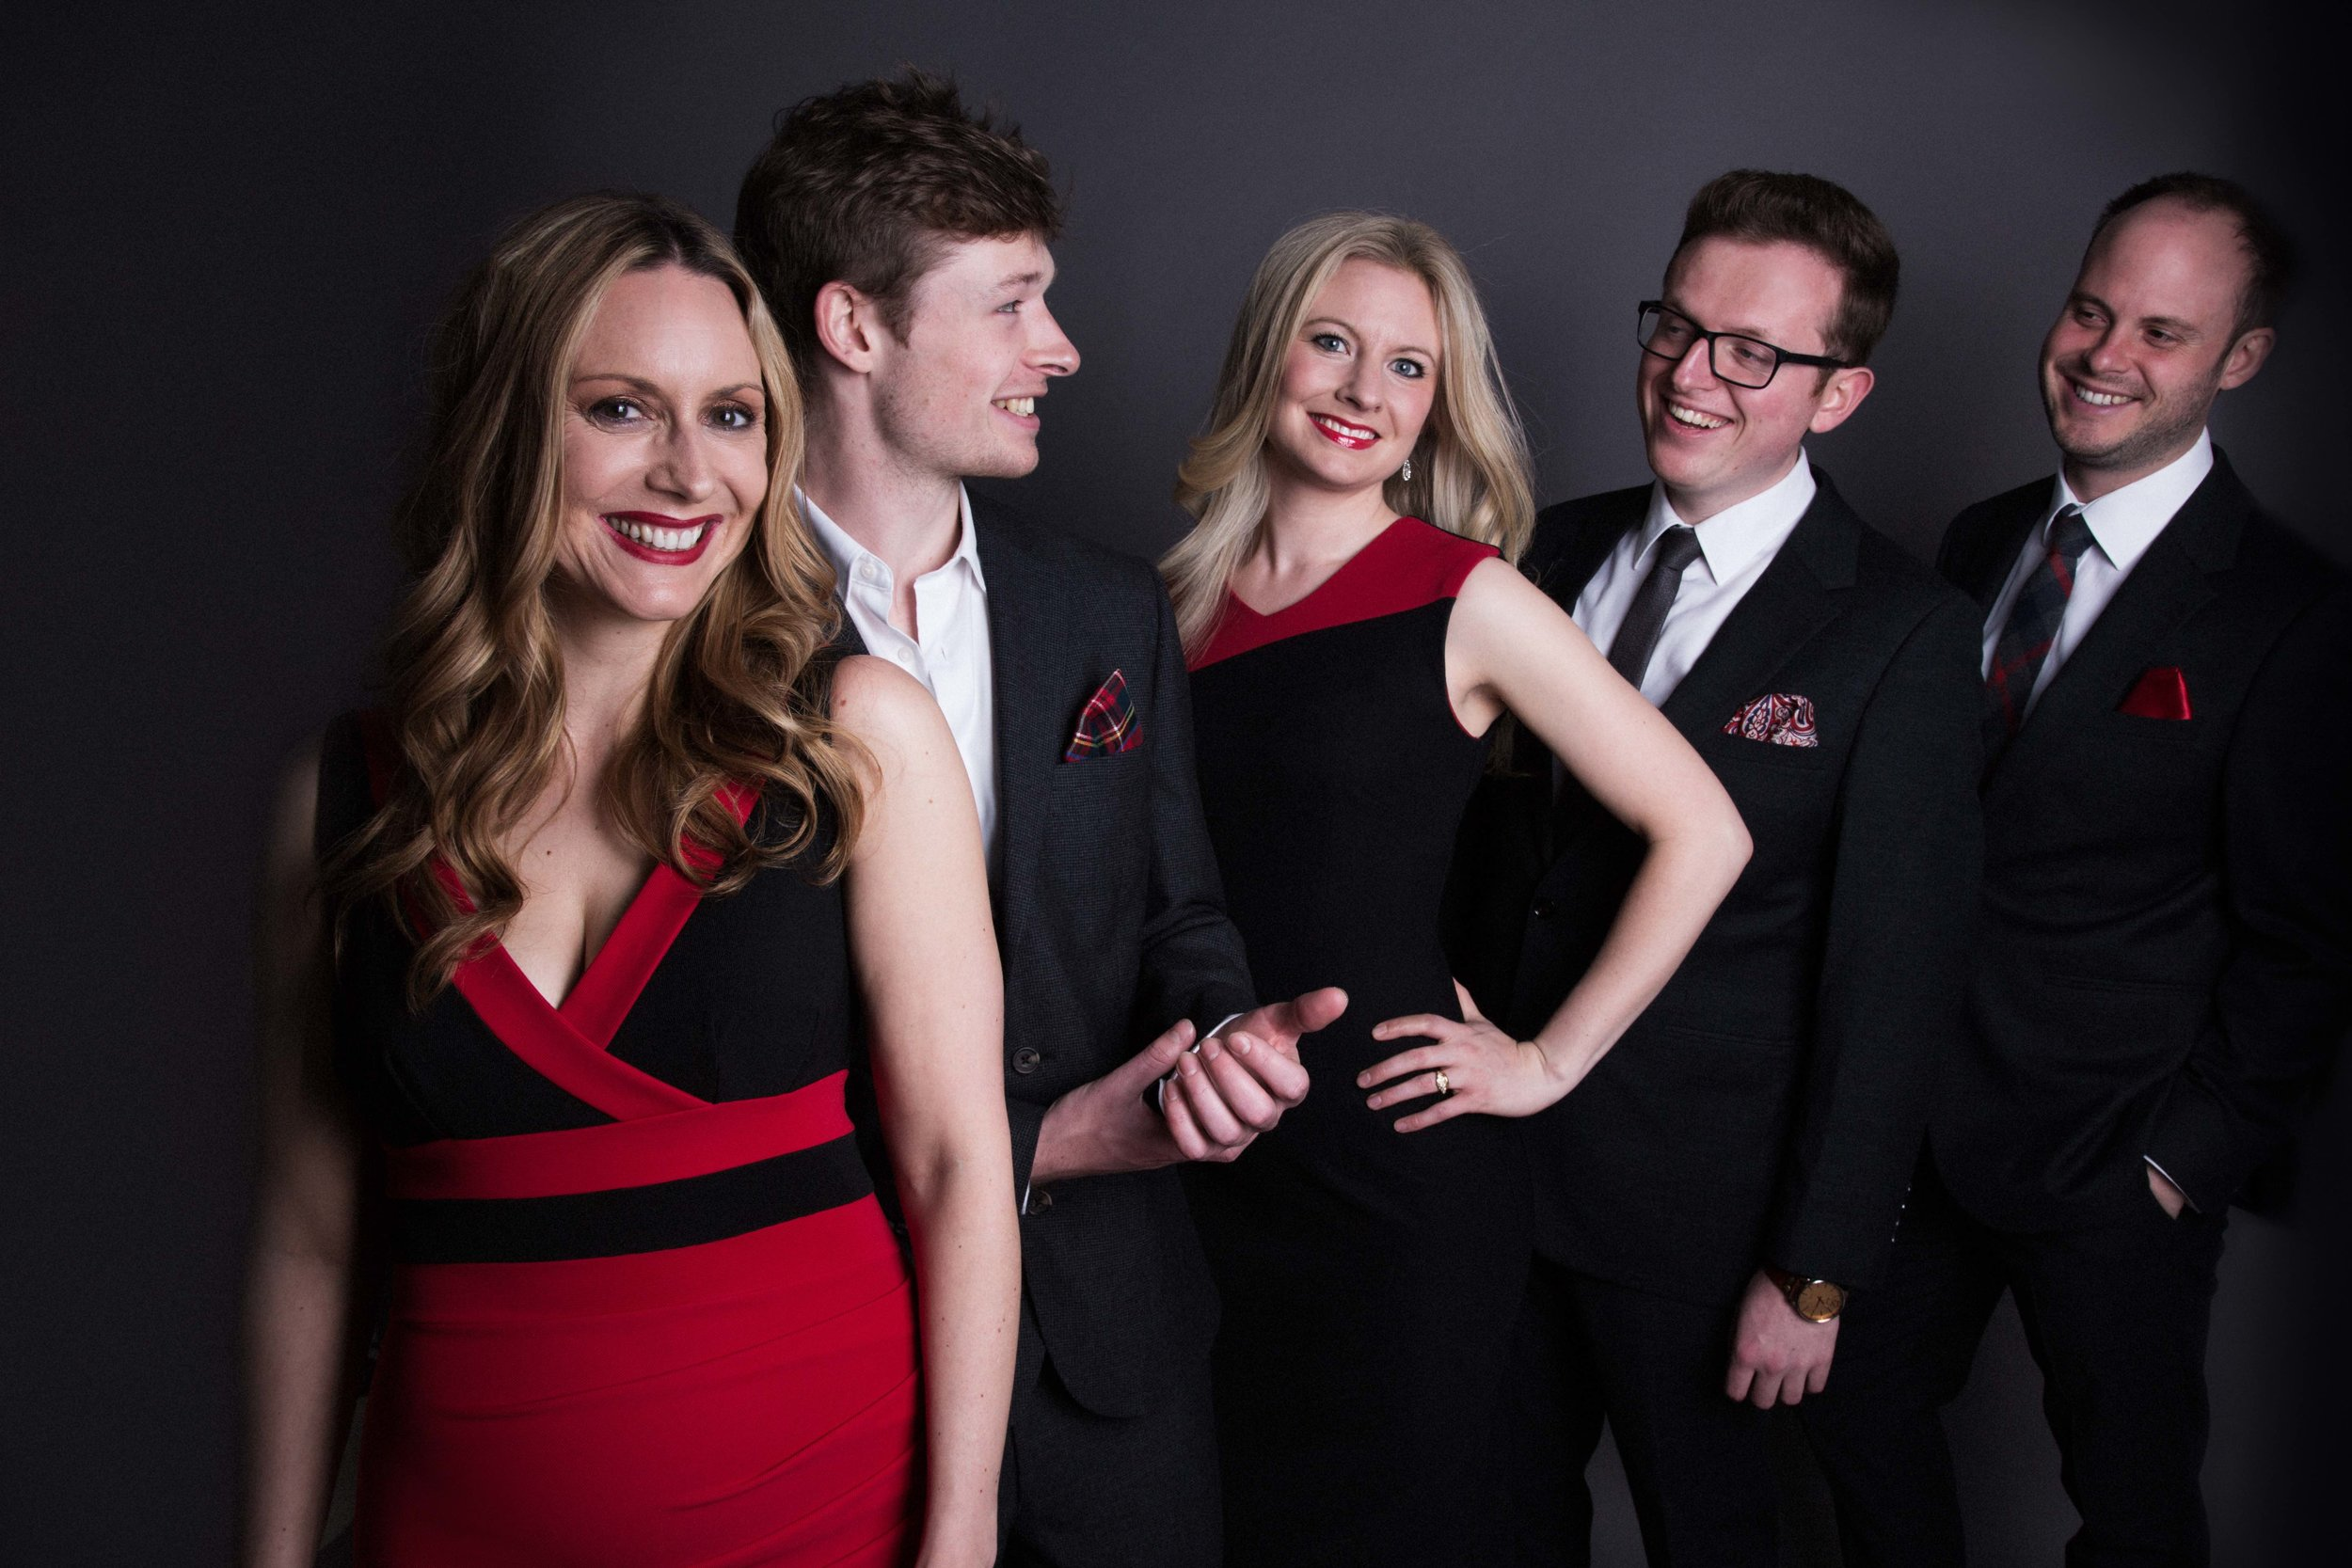 Apollo5 - …is an international award-winning British vocal quintet.